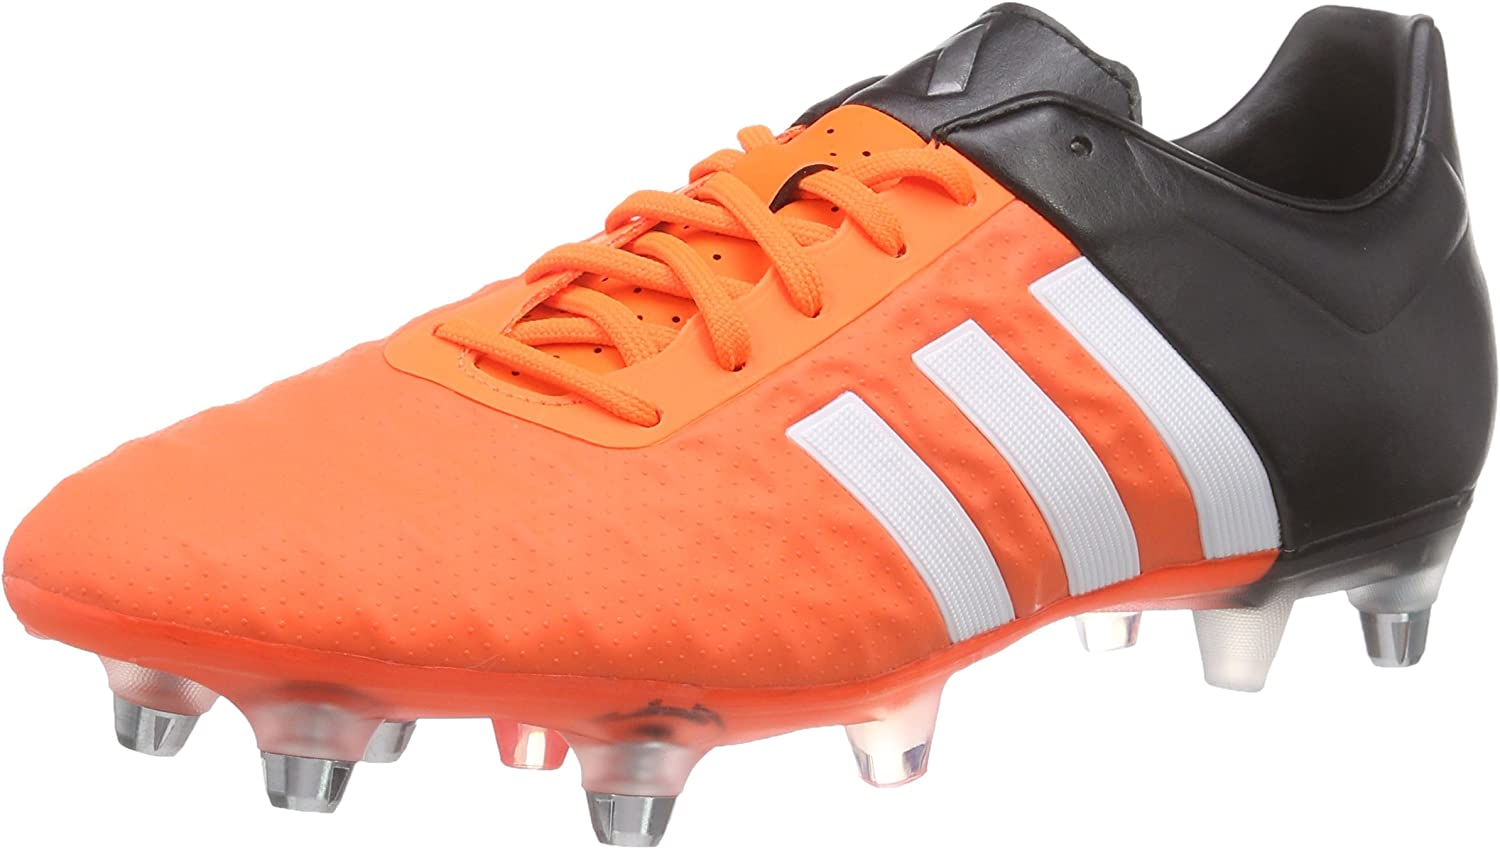 Adidas Ace 15.2 SG, Men's Football Boots